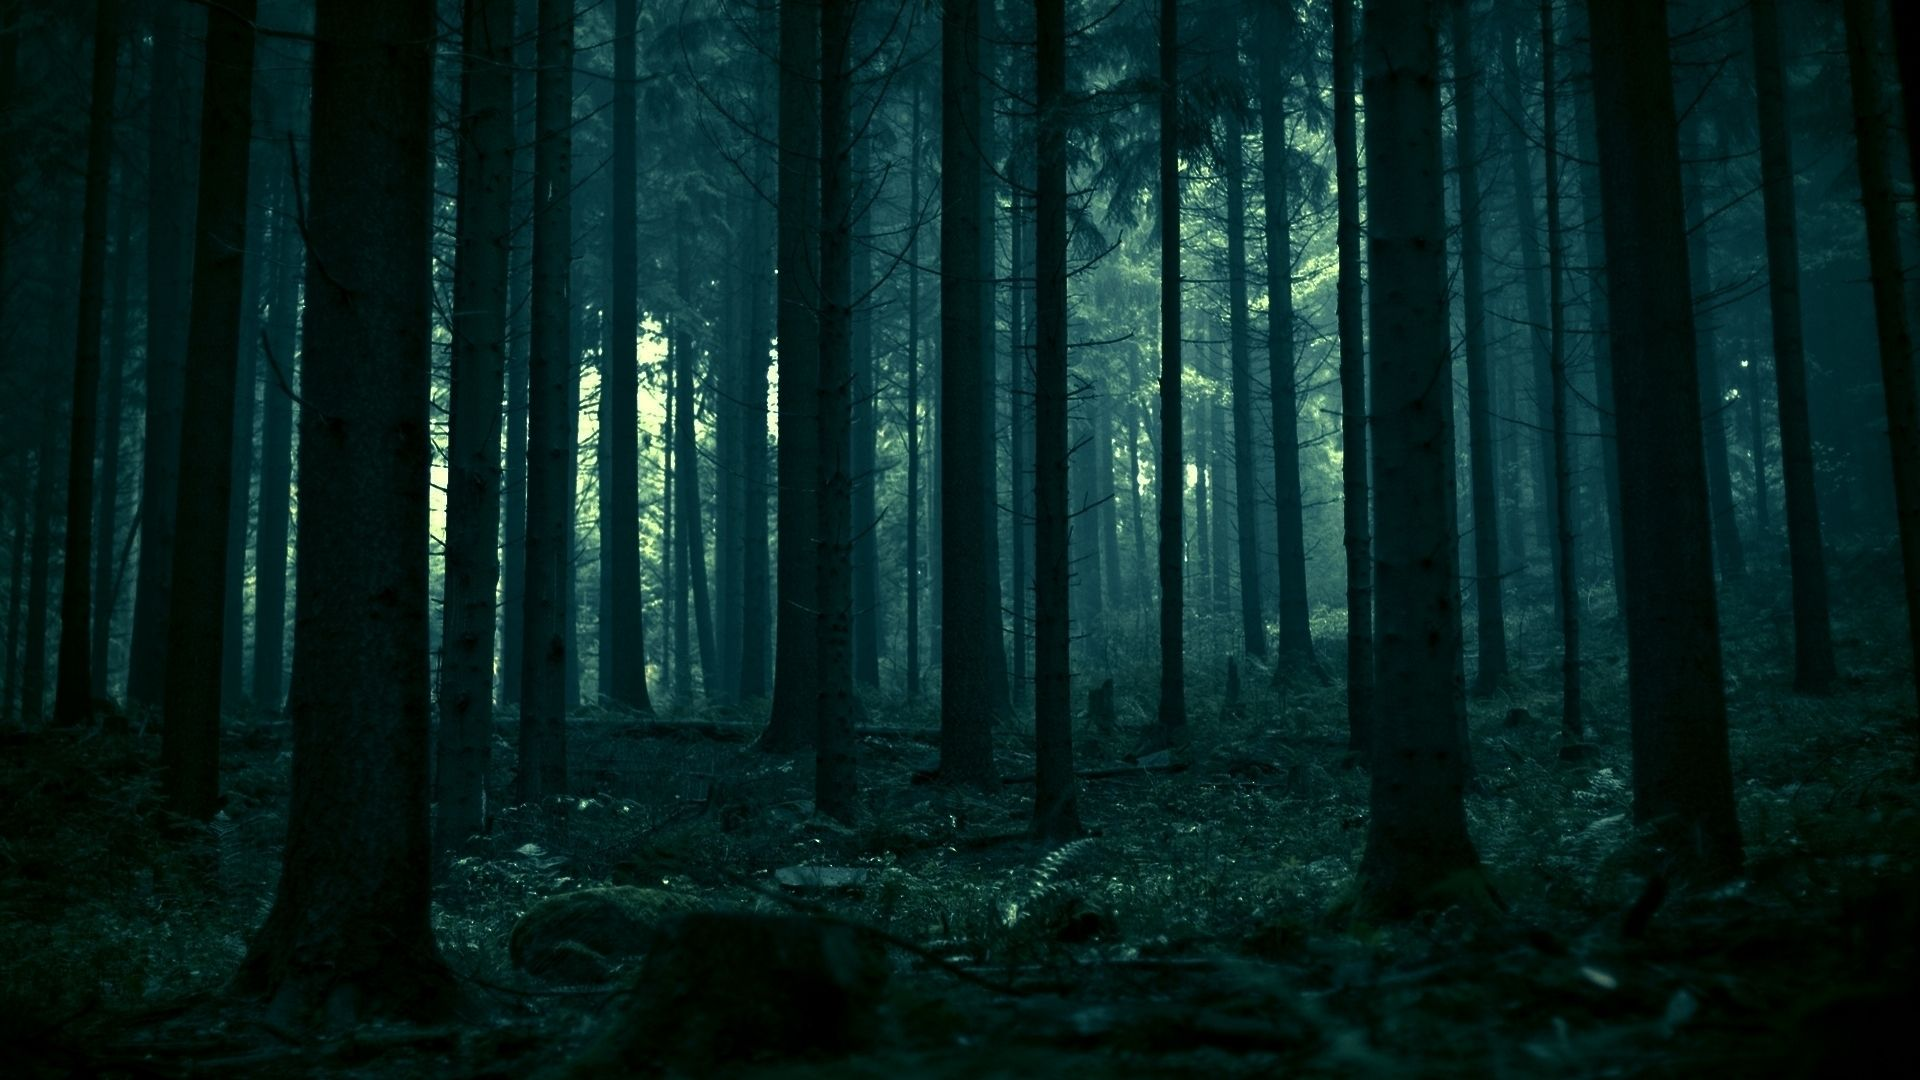 Dark Forest Wallpaper Forest Wallpaper Dark Forest Forest Photography